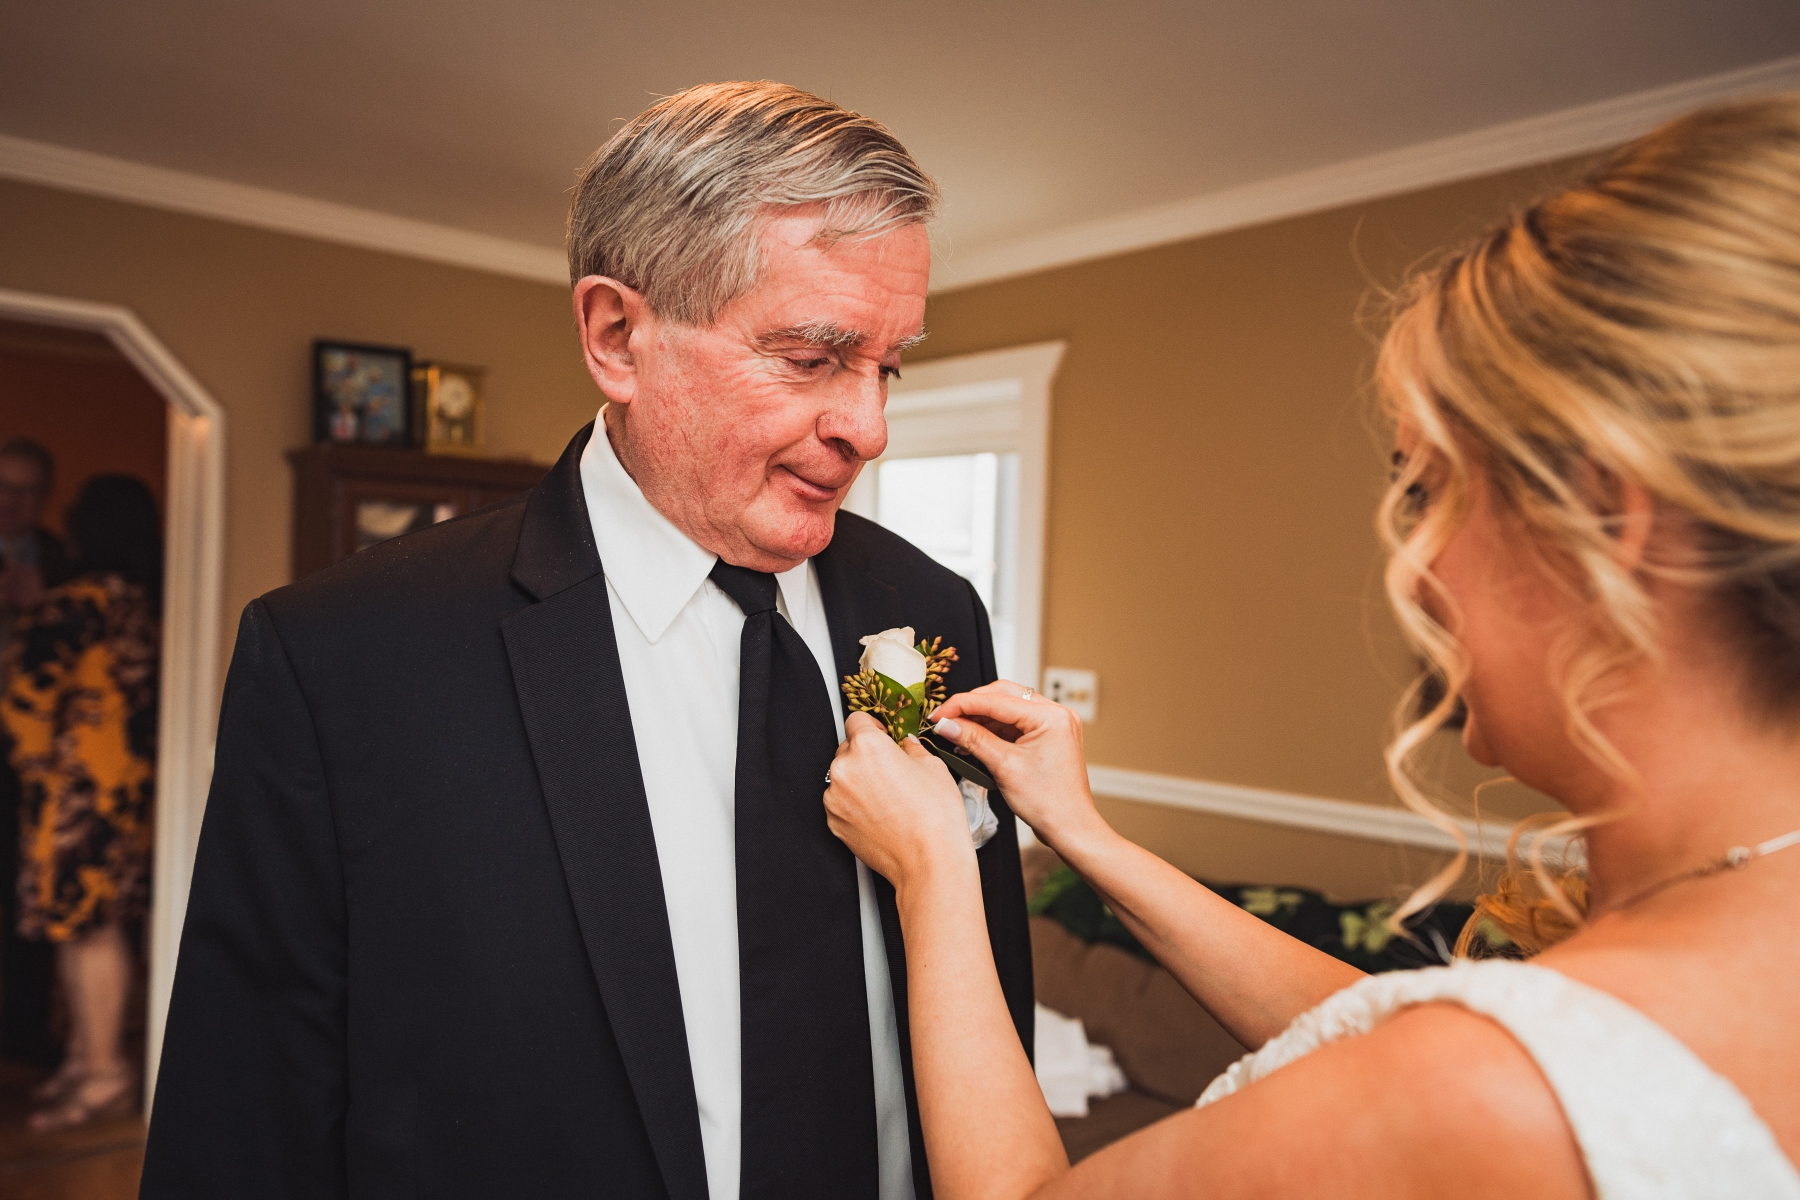 Flowers for dad? always necessary, and always a touching moment. The dad is the main subject here.